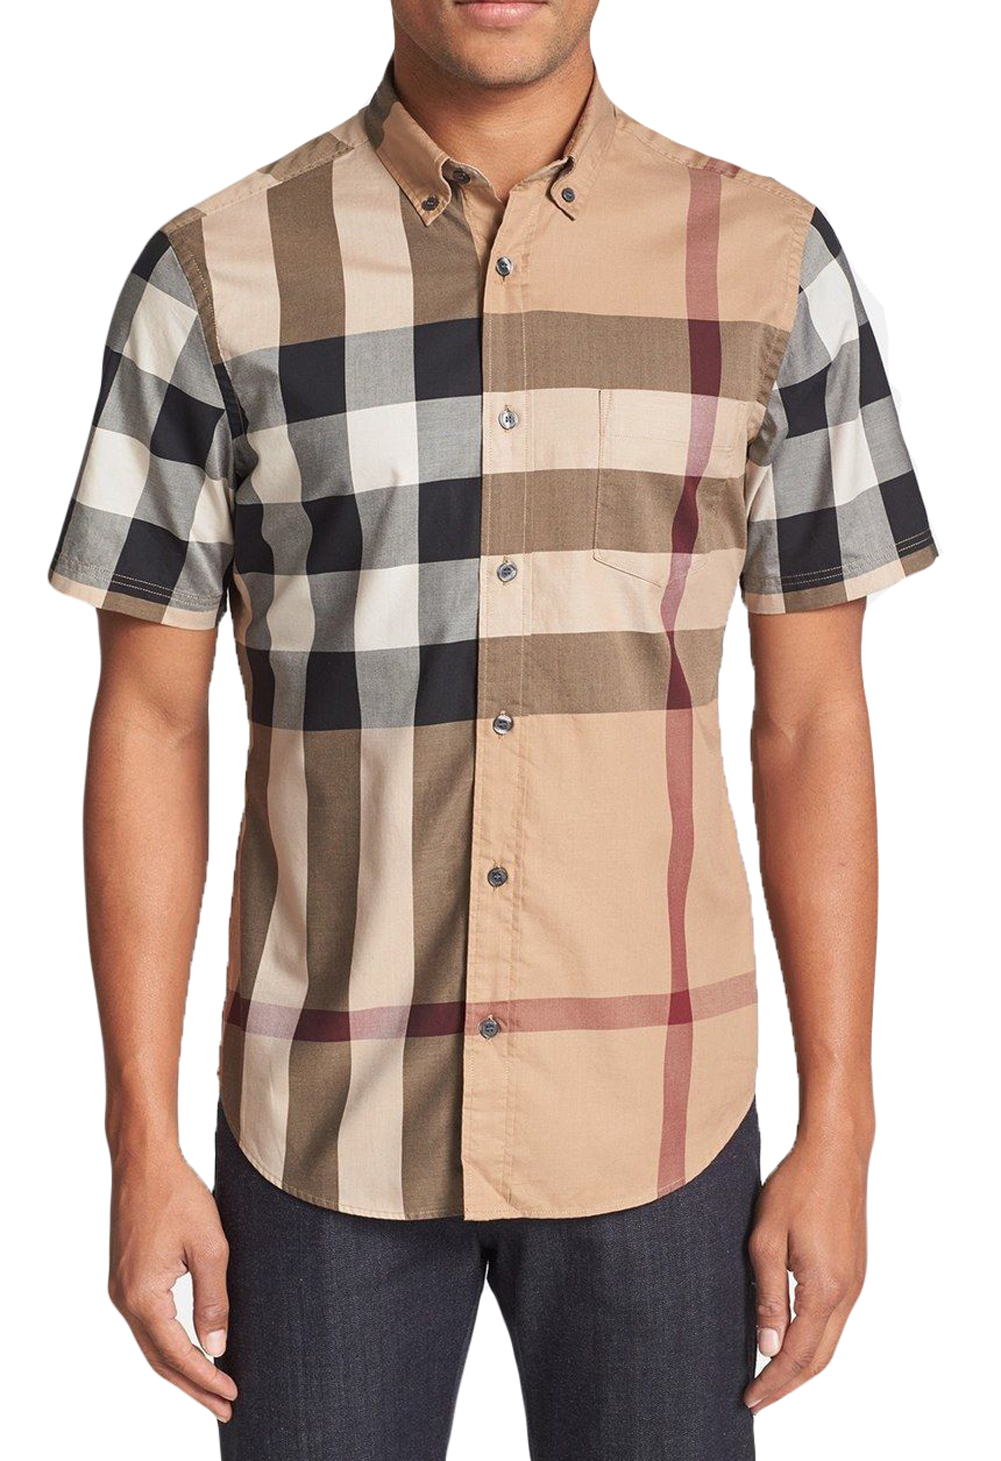 Burberry brit men 39 s fred check short sleeve shirt 275 new for Burberry brit green plaid shirt